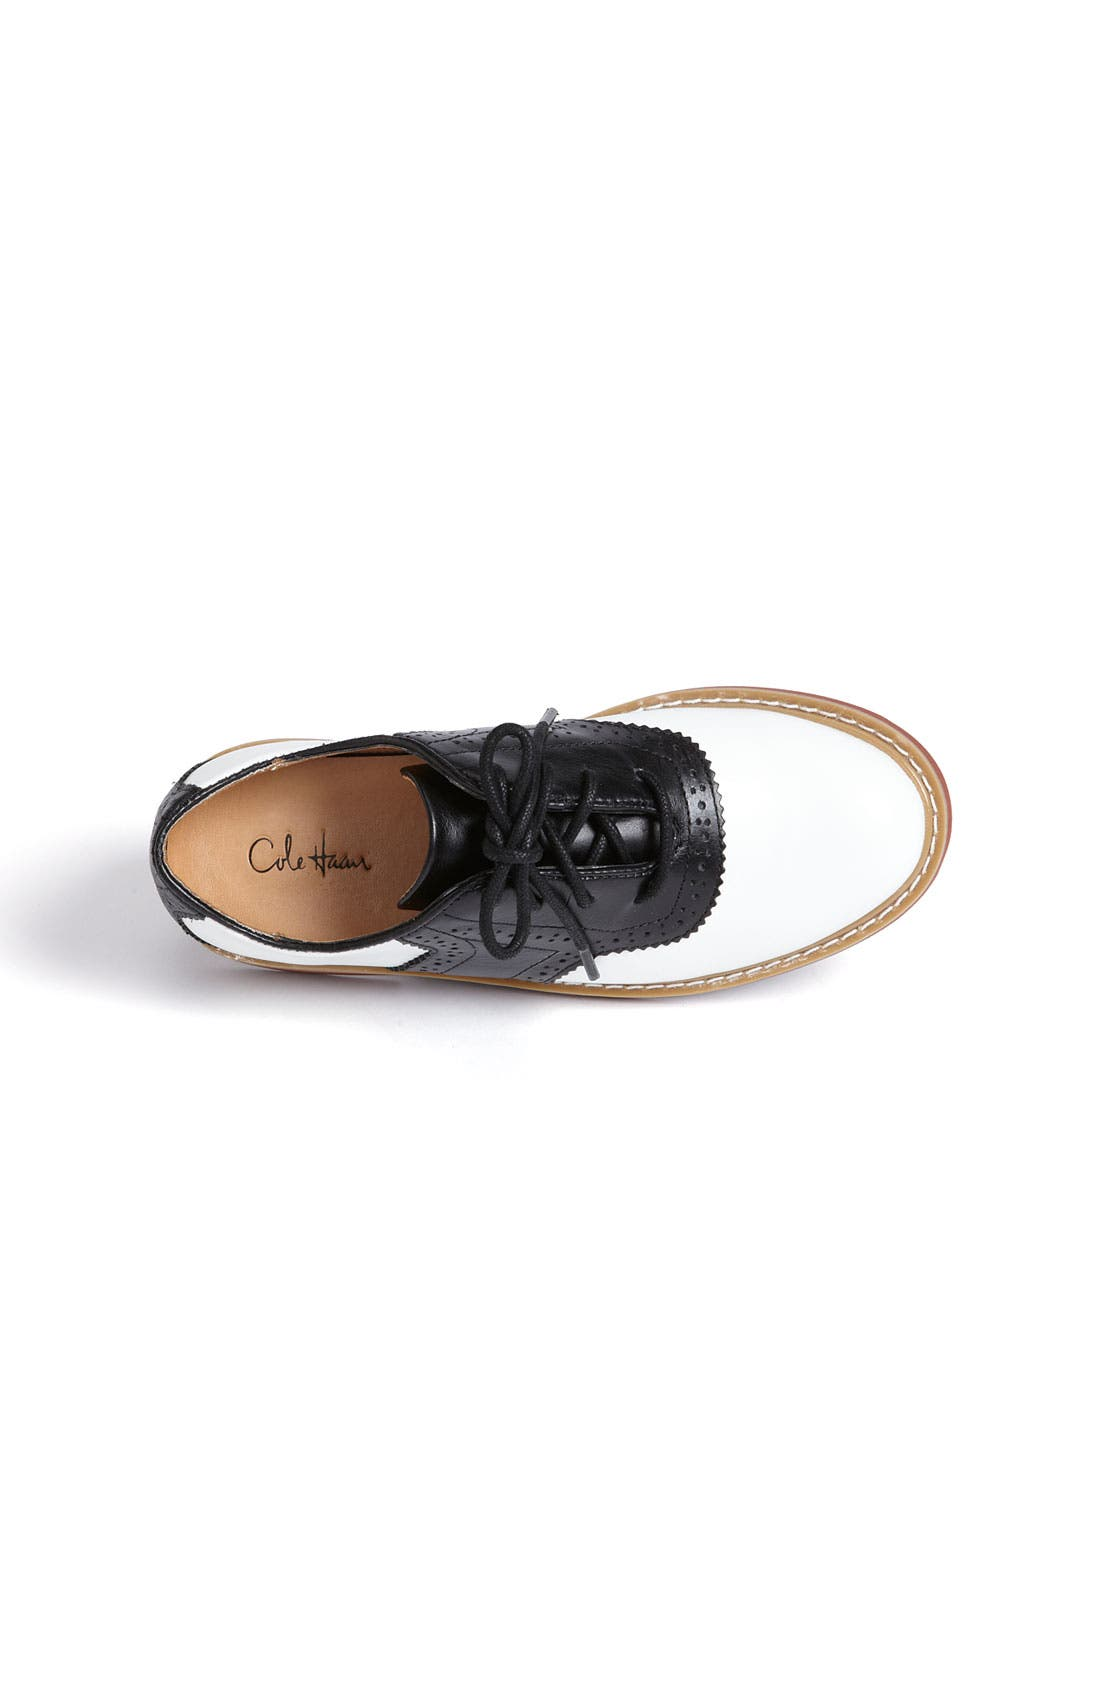 Alternate Image 3  - Cole Haan 'Air Franklin' Saddle Shoes (Toddler, Little Kid & Big Kid)